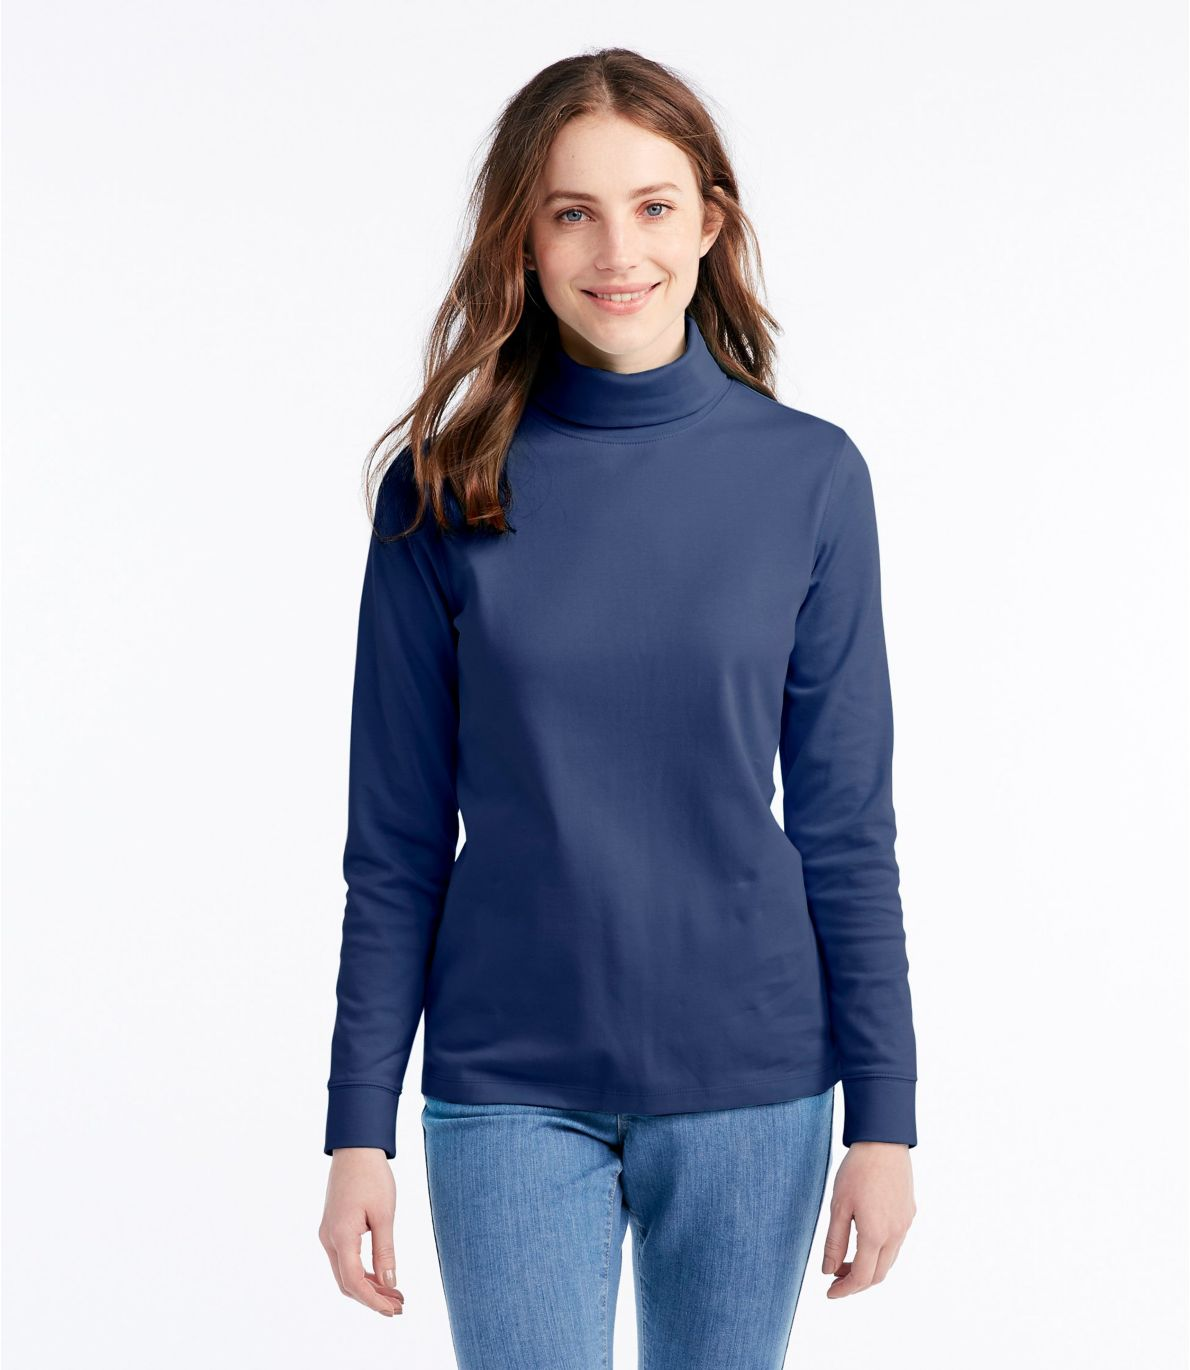 Women's L.L.Bean Interlock Turtleneck, Long-Sleeve